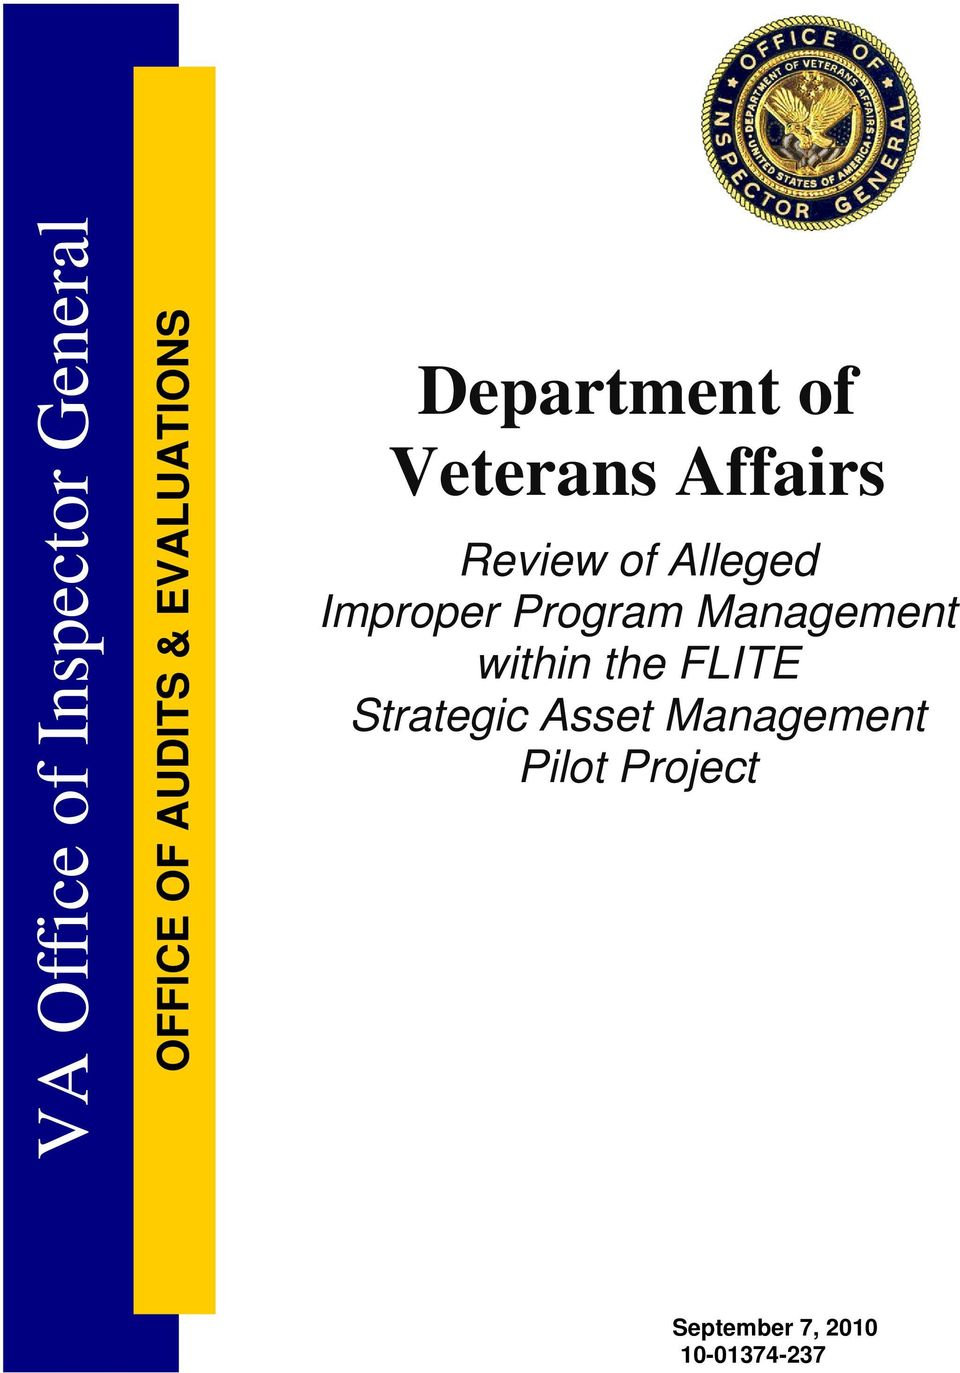 Alleged Improper Program Management within the FLITE